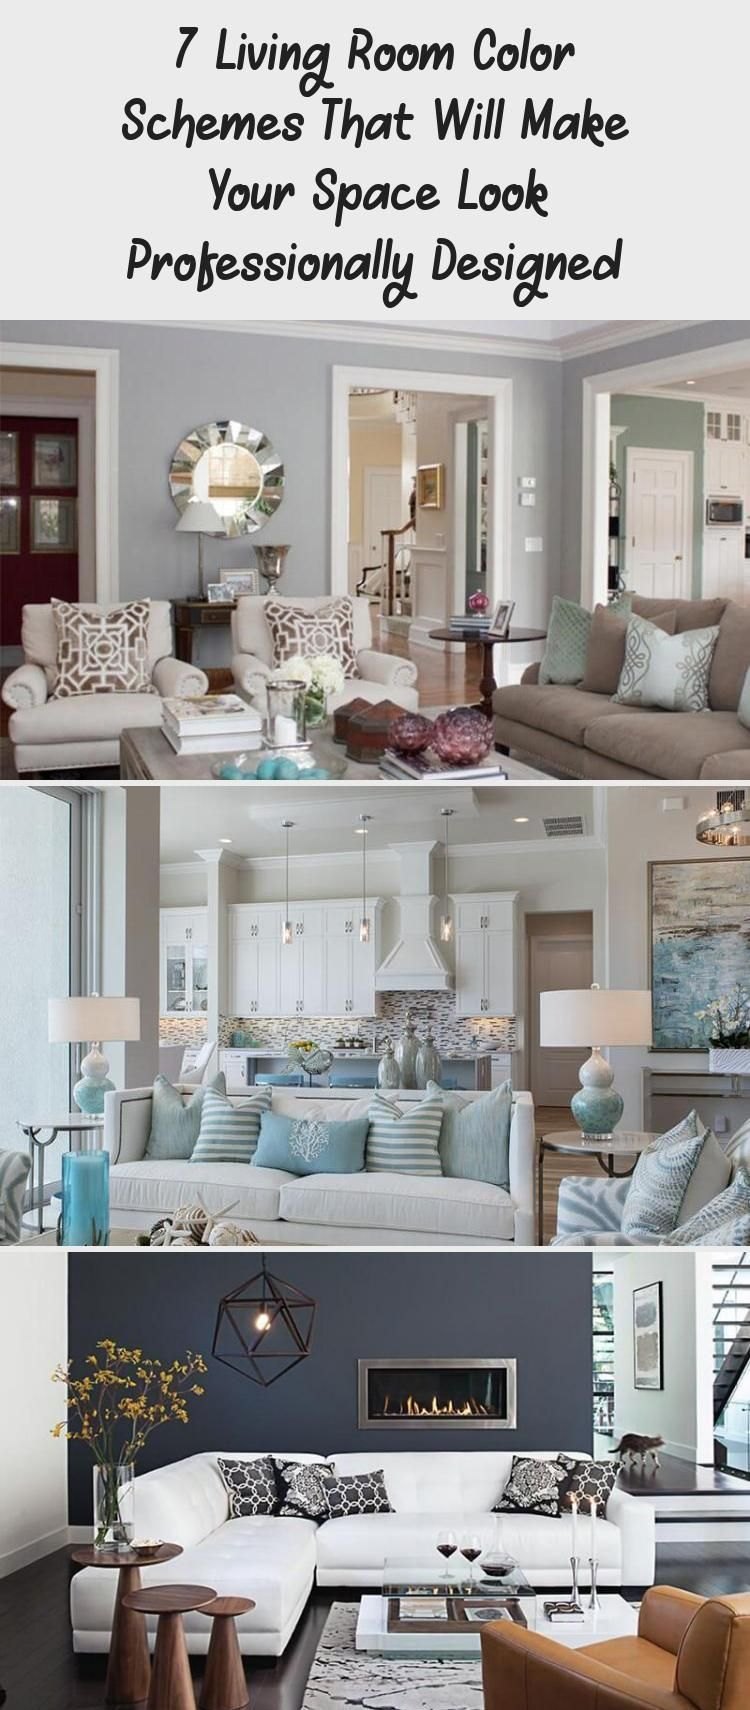 Rustic Living Room Colors Scheme Rustic Living Room Colors Colors Living Room Rusti In 2020 Living Room Color Schemes Rustic Living Room Colors Room Color Schemes #paint #colors #for #rustic #living #room